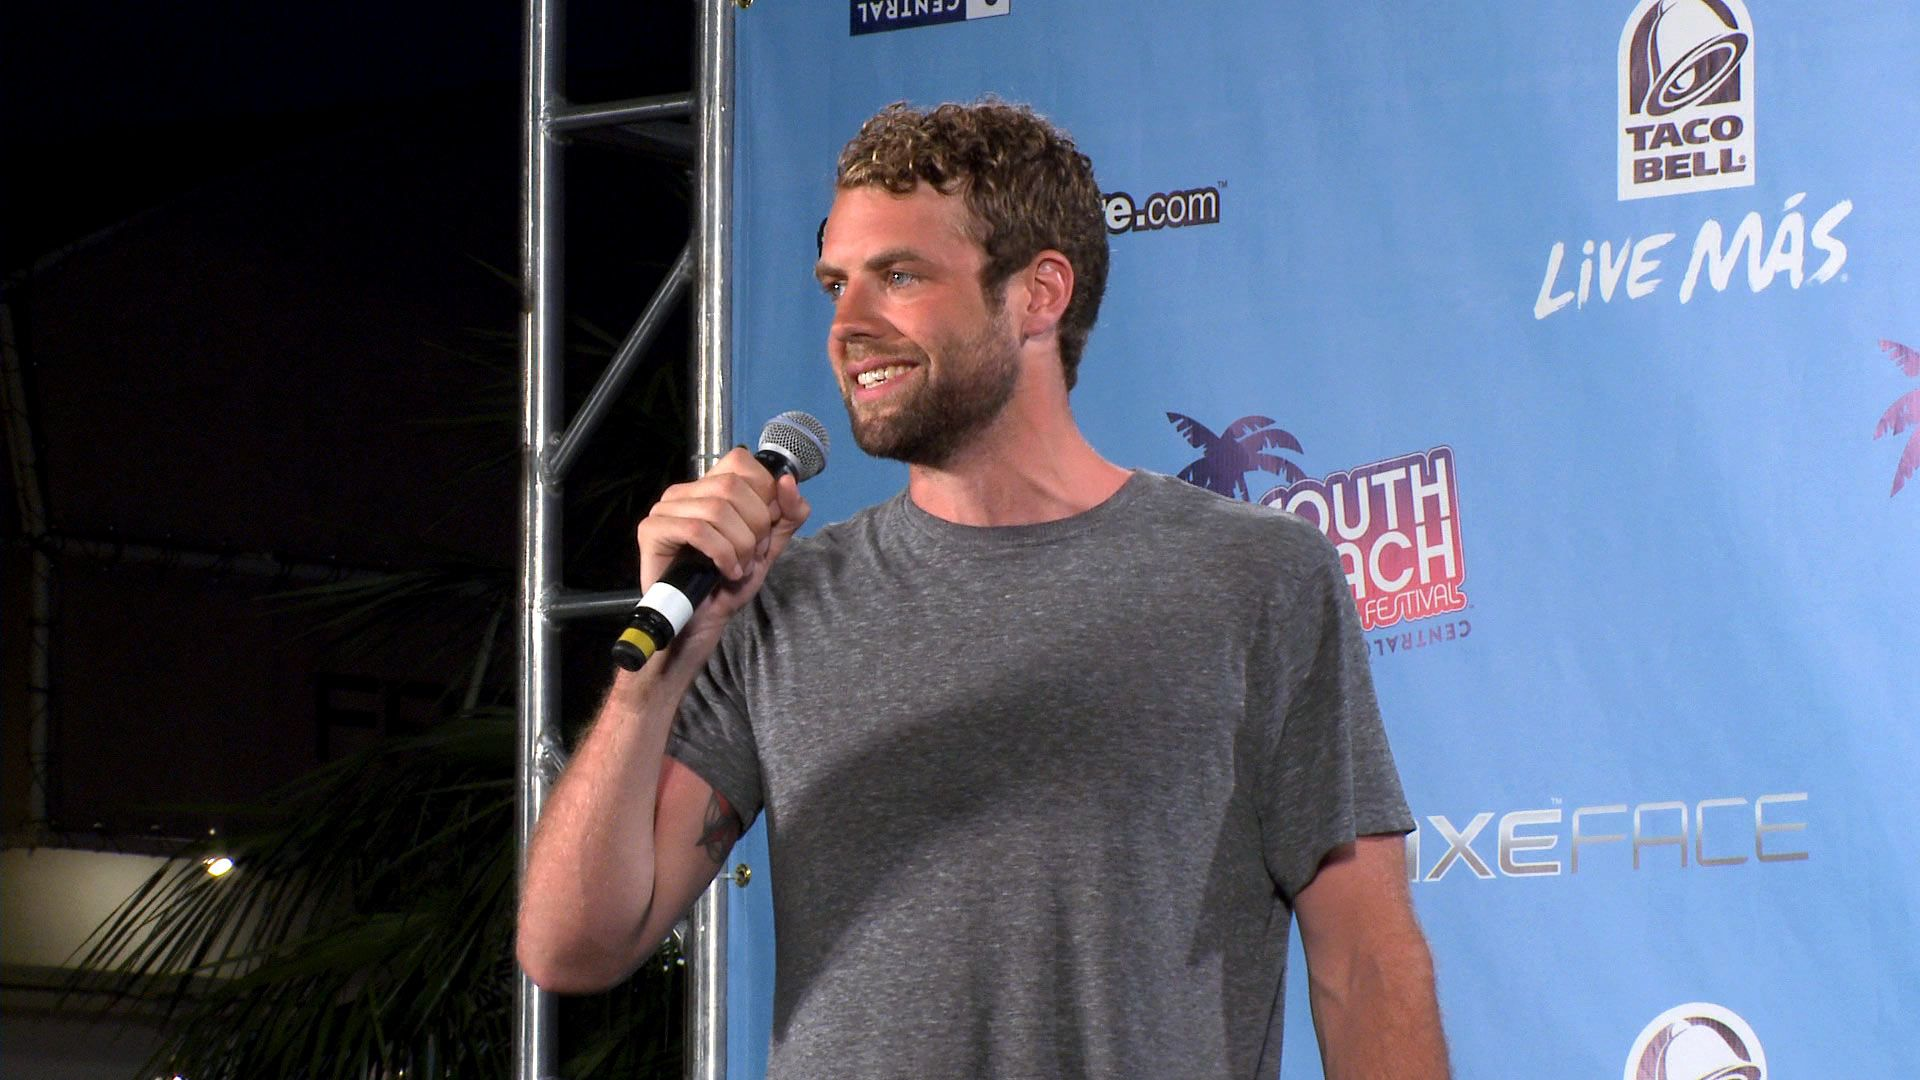 South Beach Comedy Festival: Brooks Wheelan - Crafty Homeless